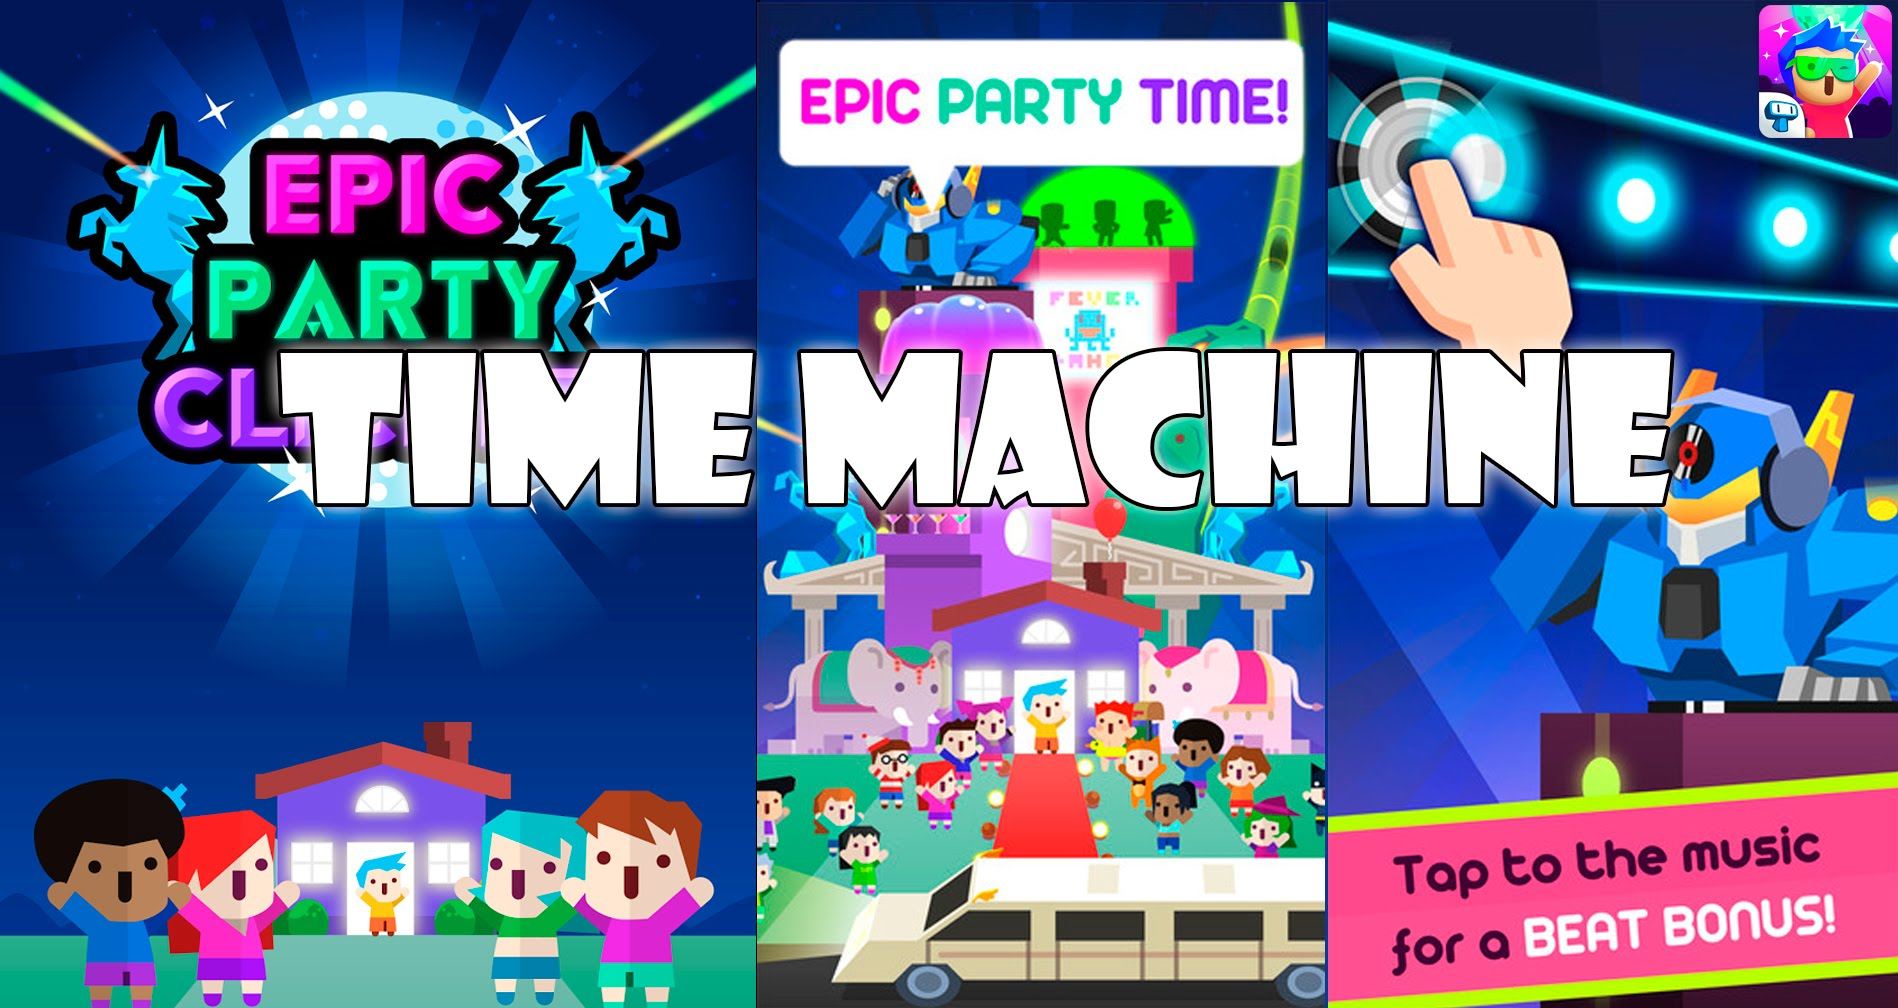 no-jailbreak] Epic Party Clicker - Beat Drop & Tap to the Rhythm v1